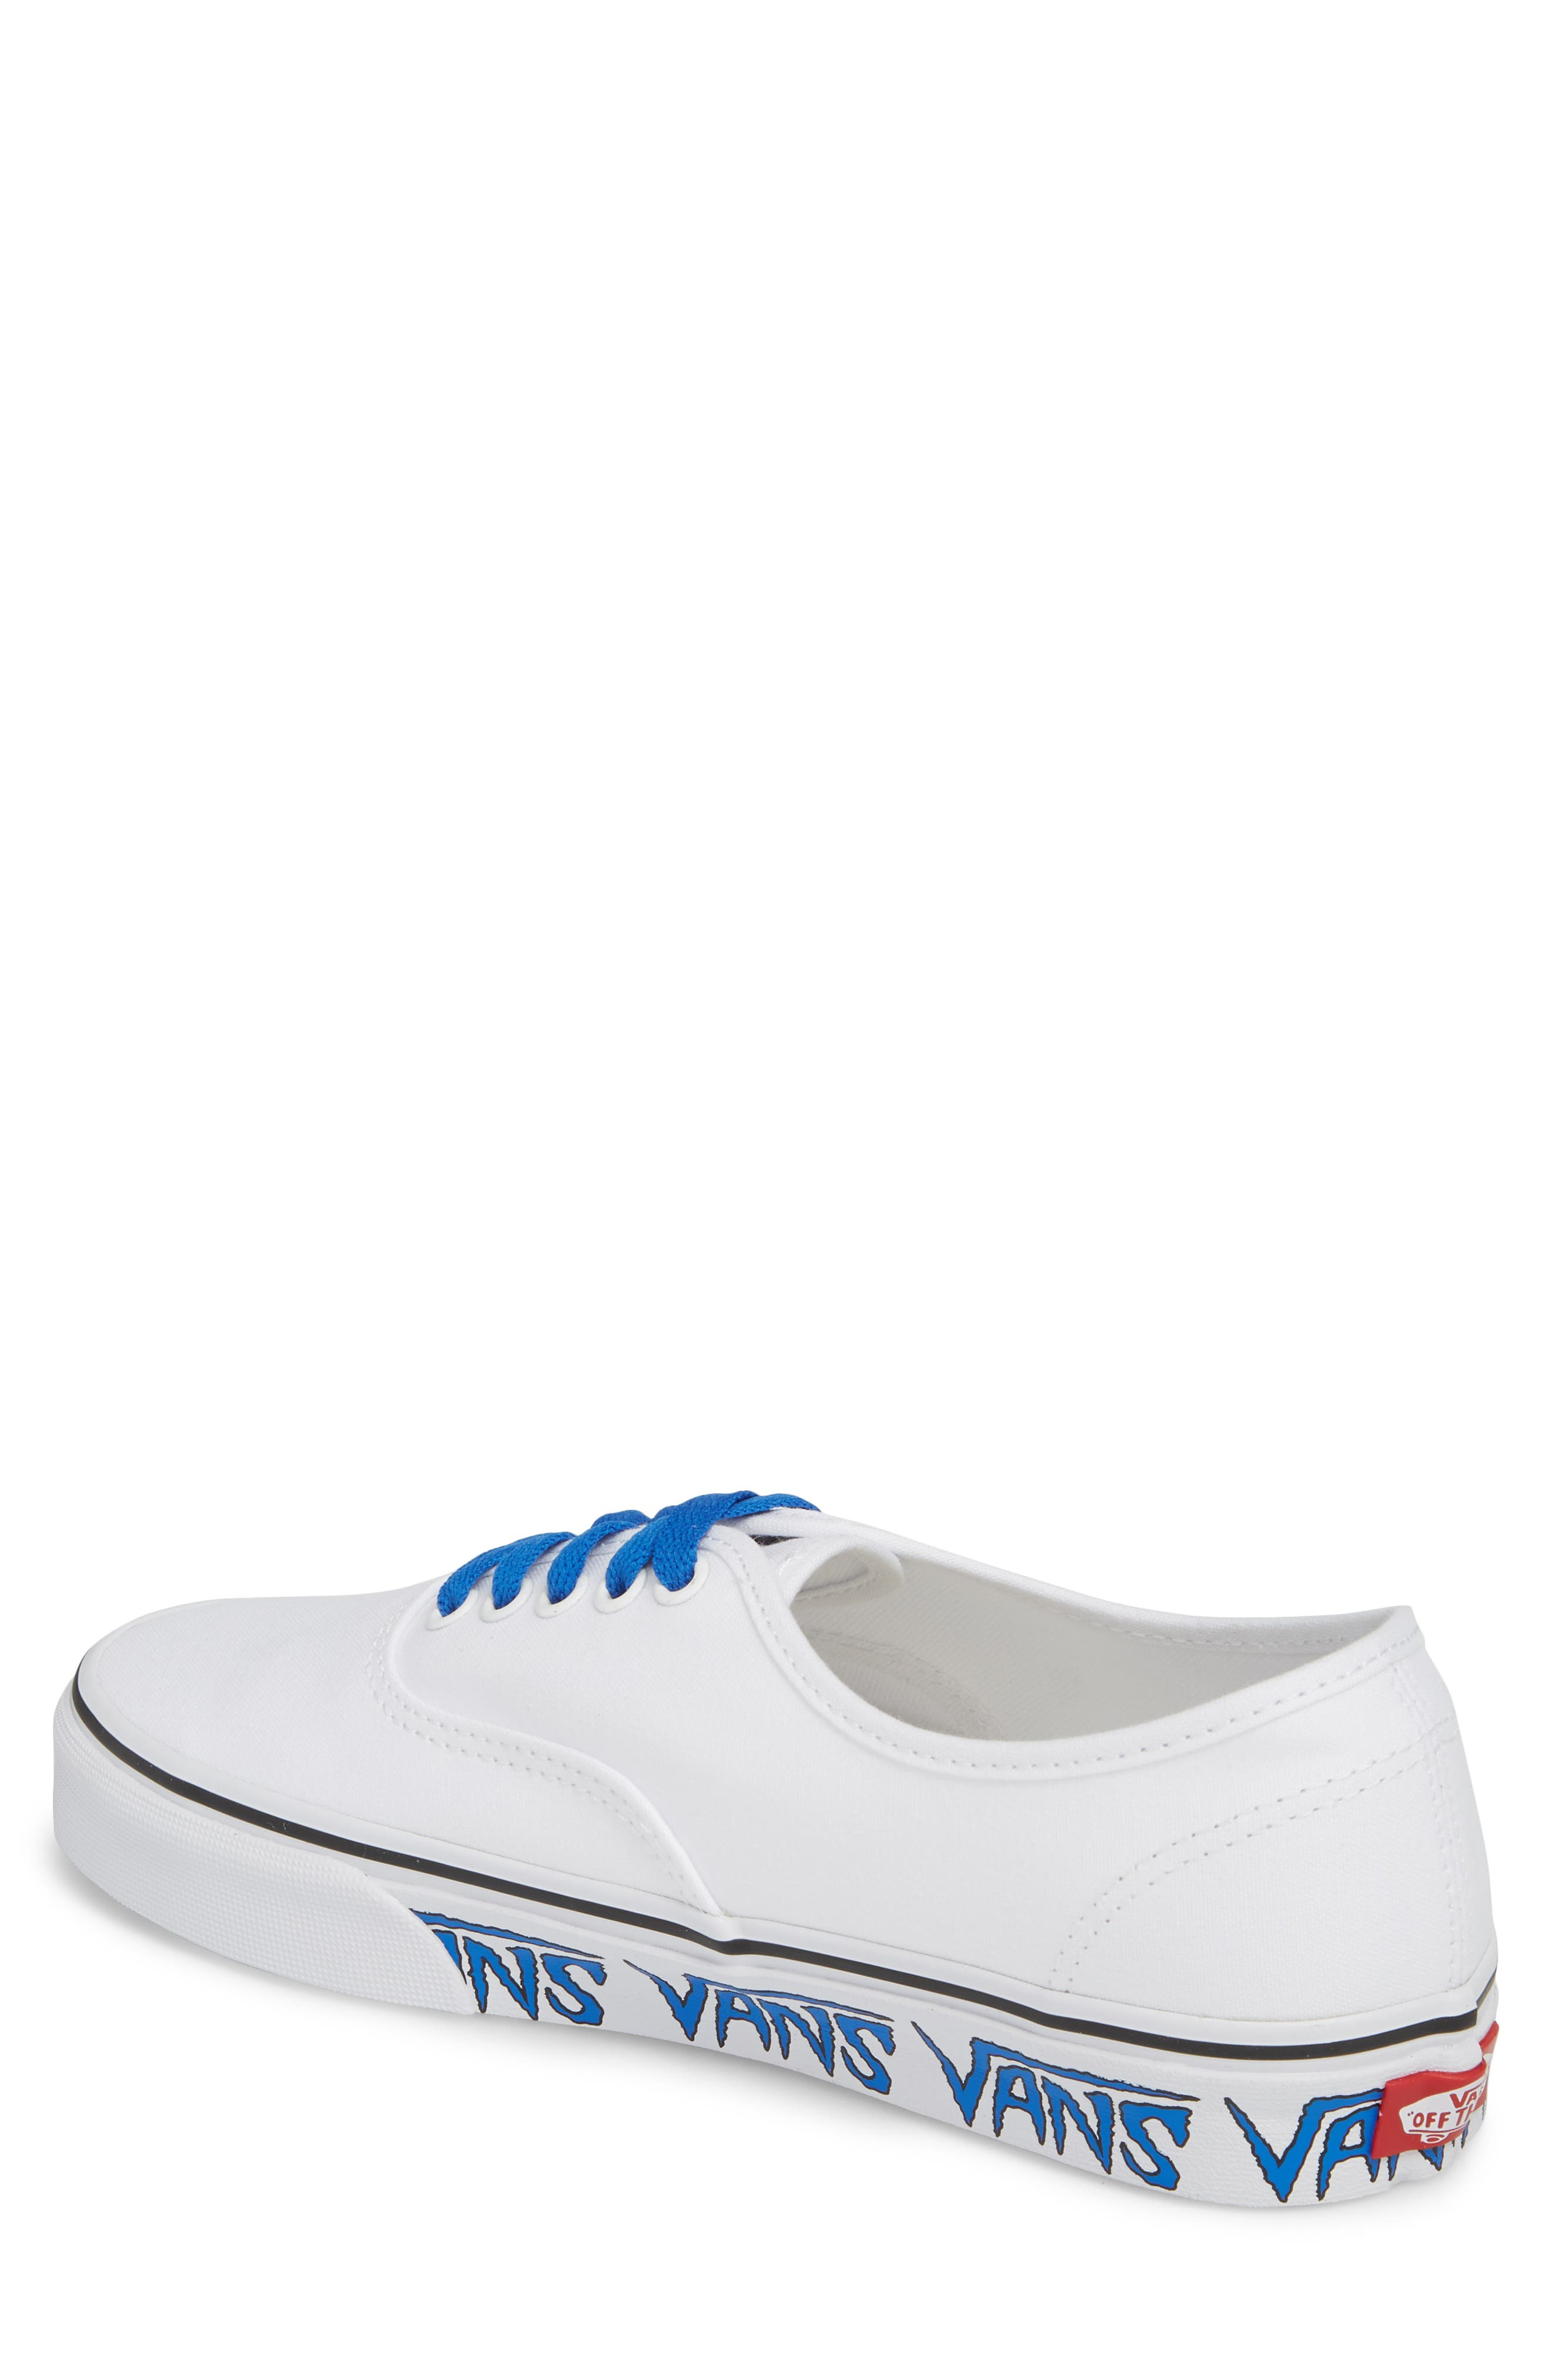 Authentic Sketch Sidewall Sneaker,                             Alternate thumbnail 2, color,                             True White/ Victoria Blue